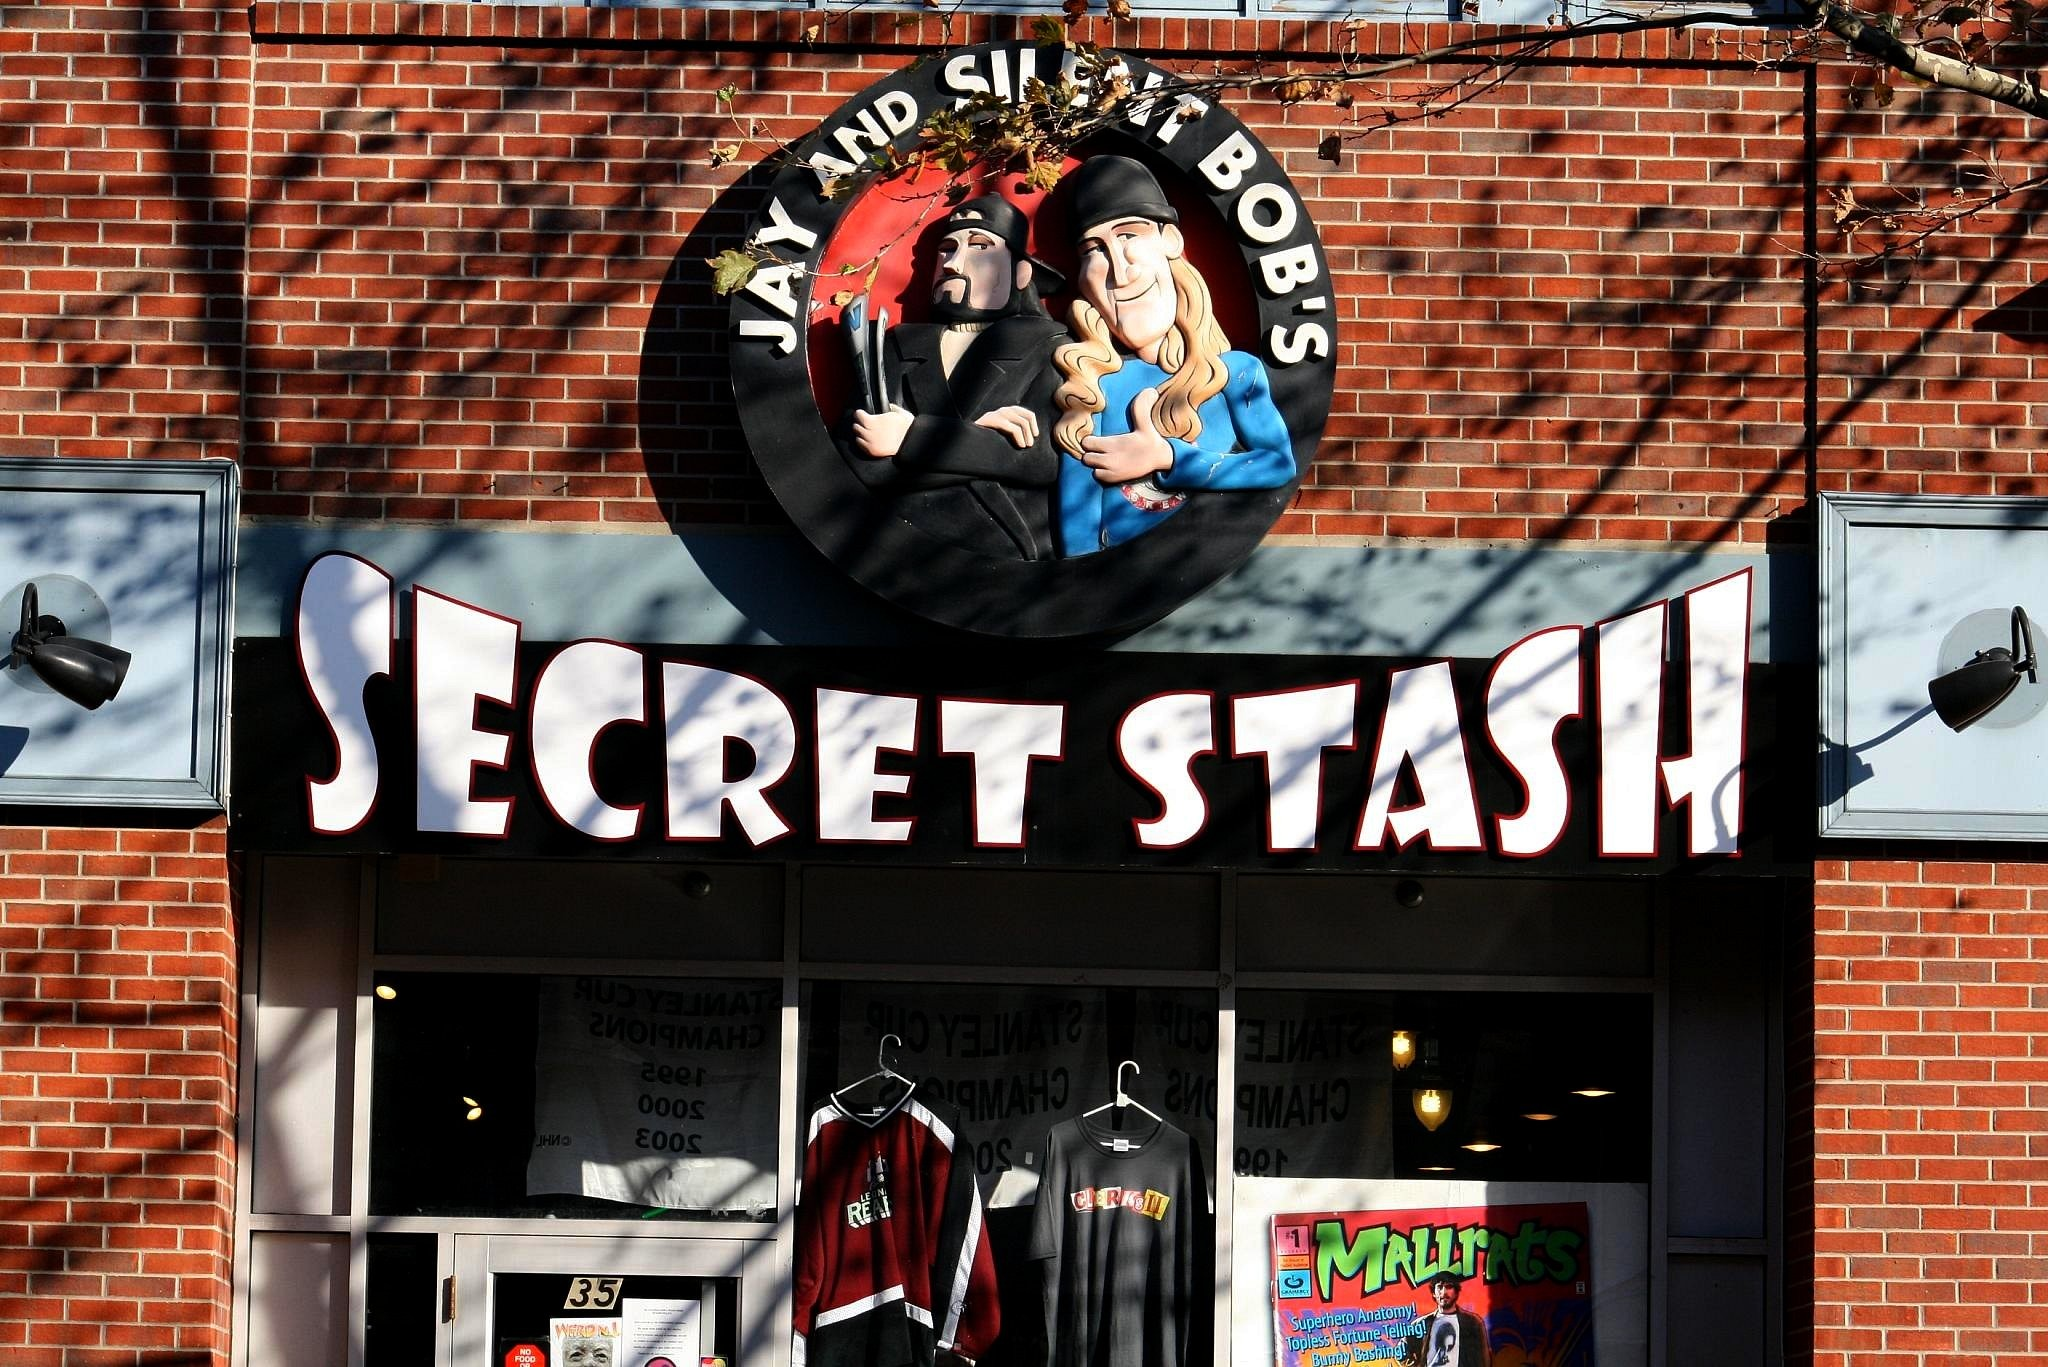 2048x1367 File:Jay and Silent Bob's Secret Stash . Red Bank . New Jersey.jpg